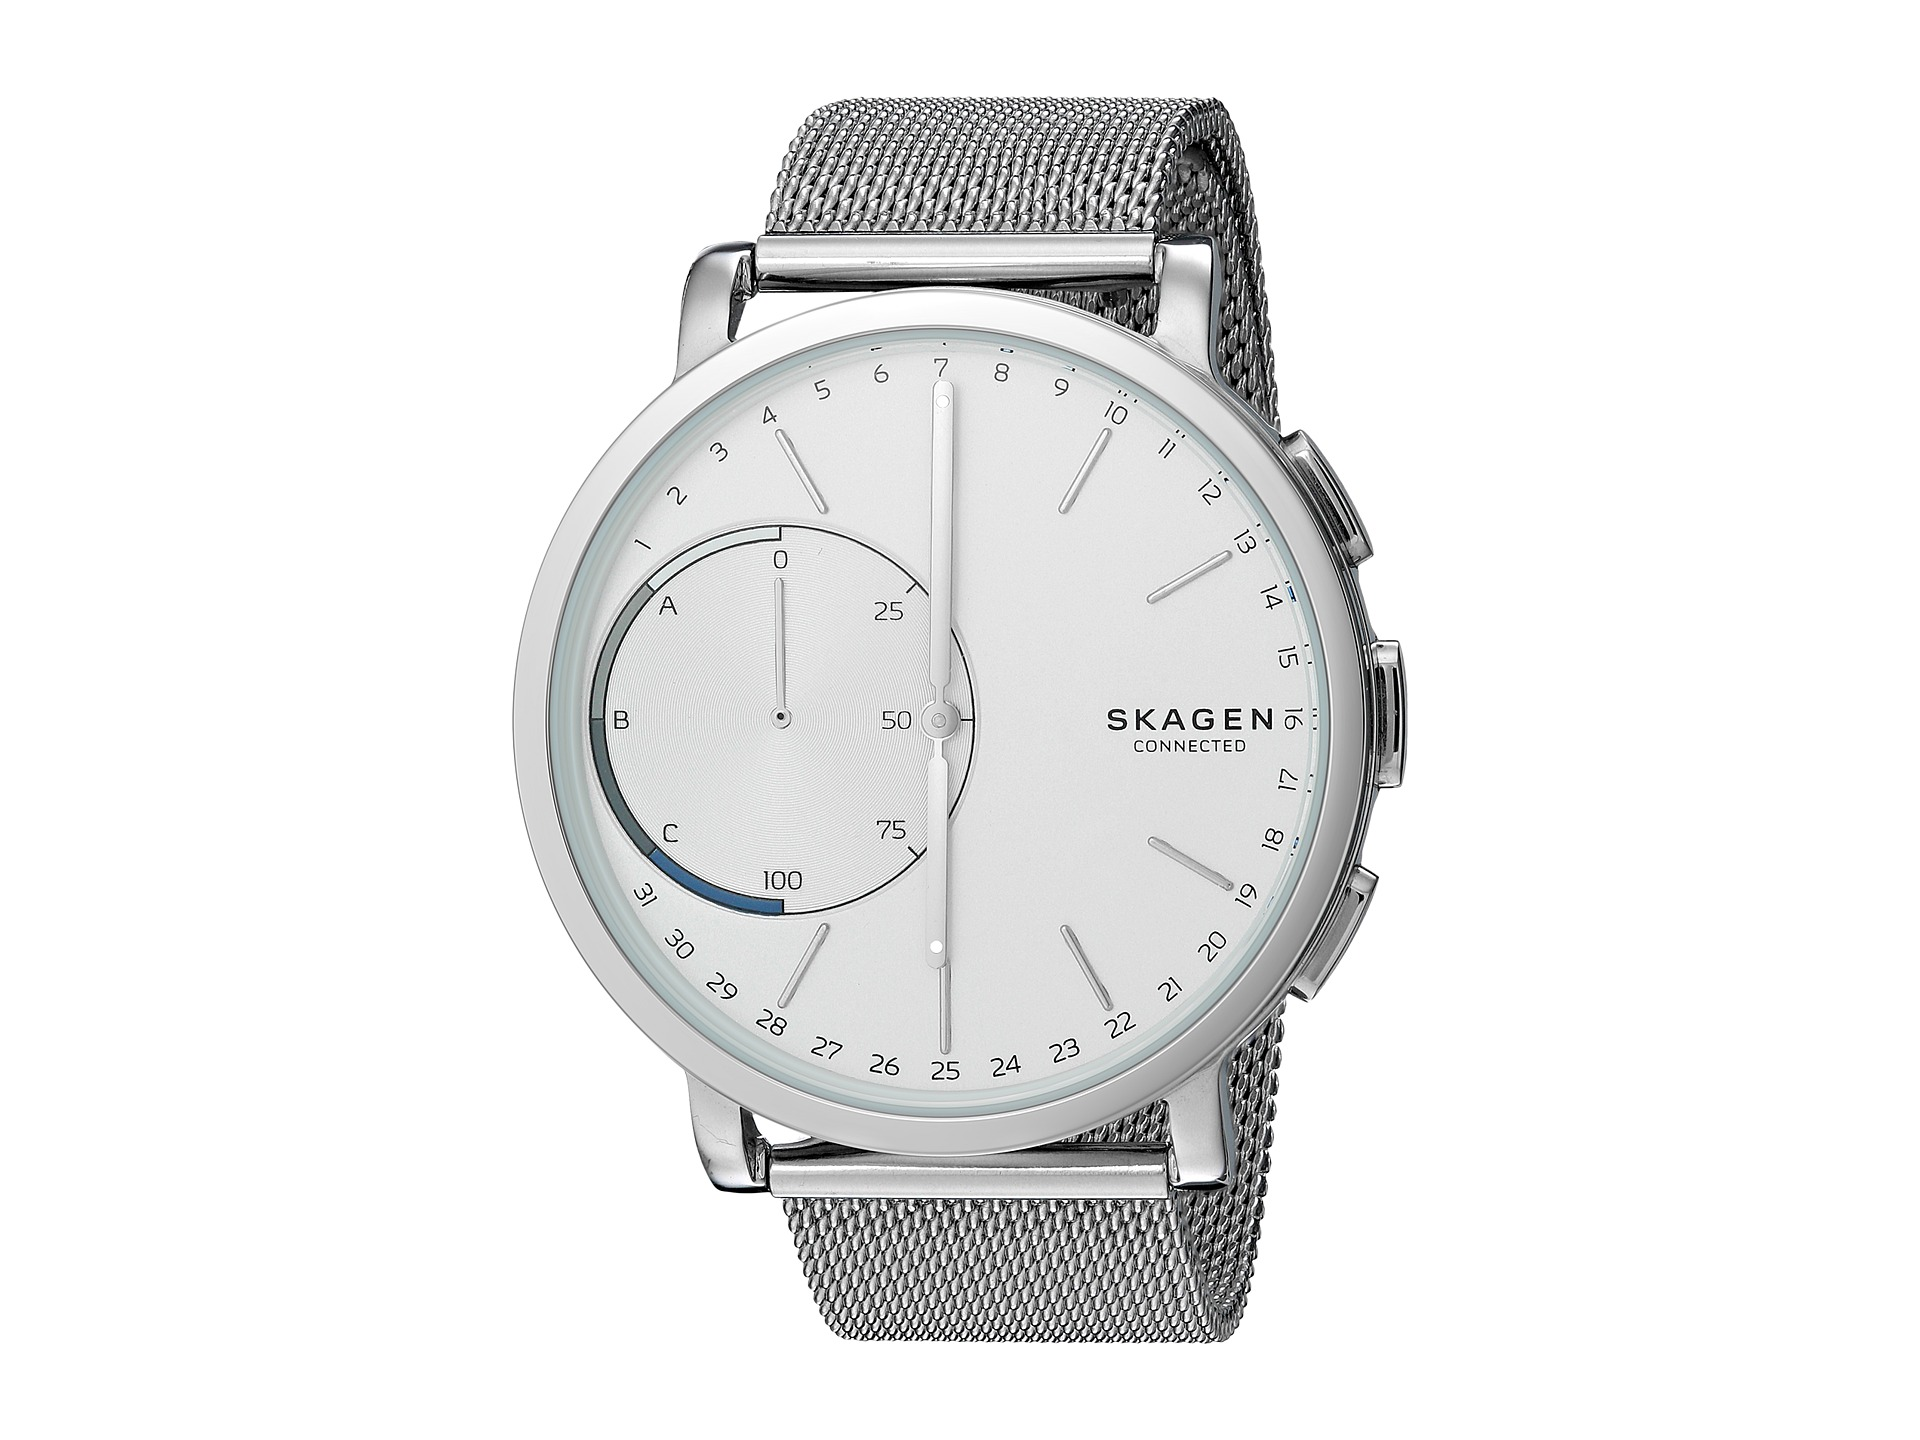 Skagen Hagen Connected Hybrid Smartwatch SKT1100 at Zappos.com